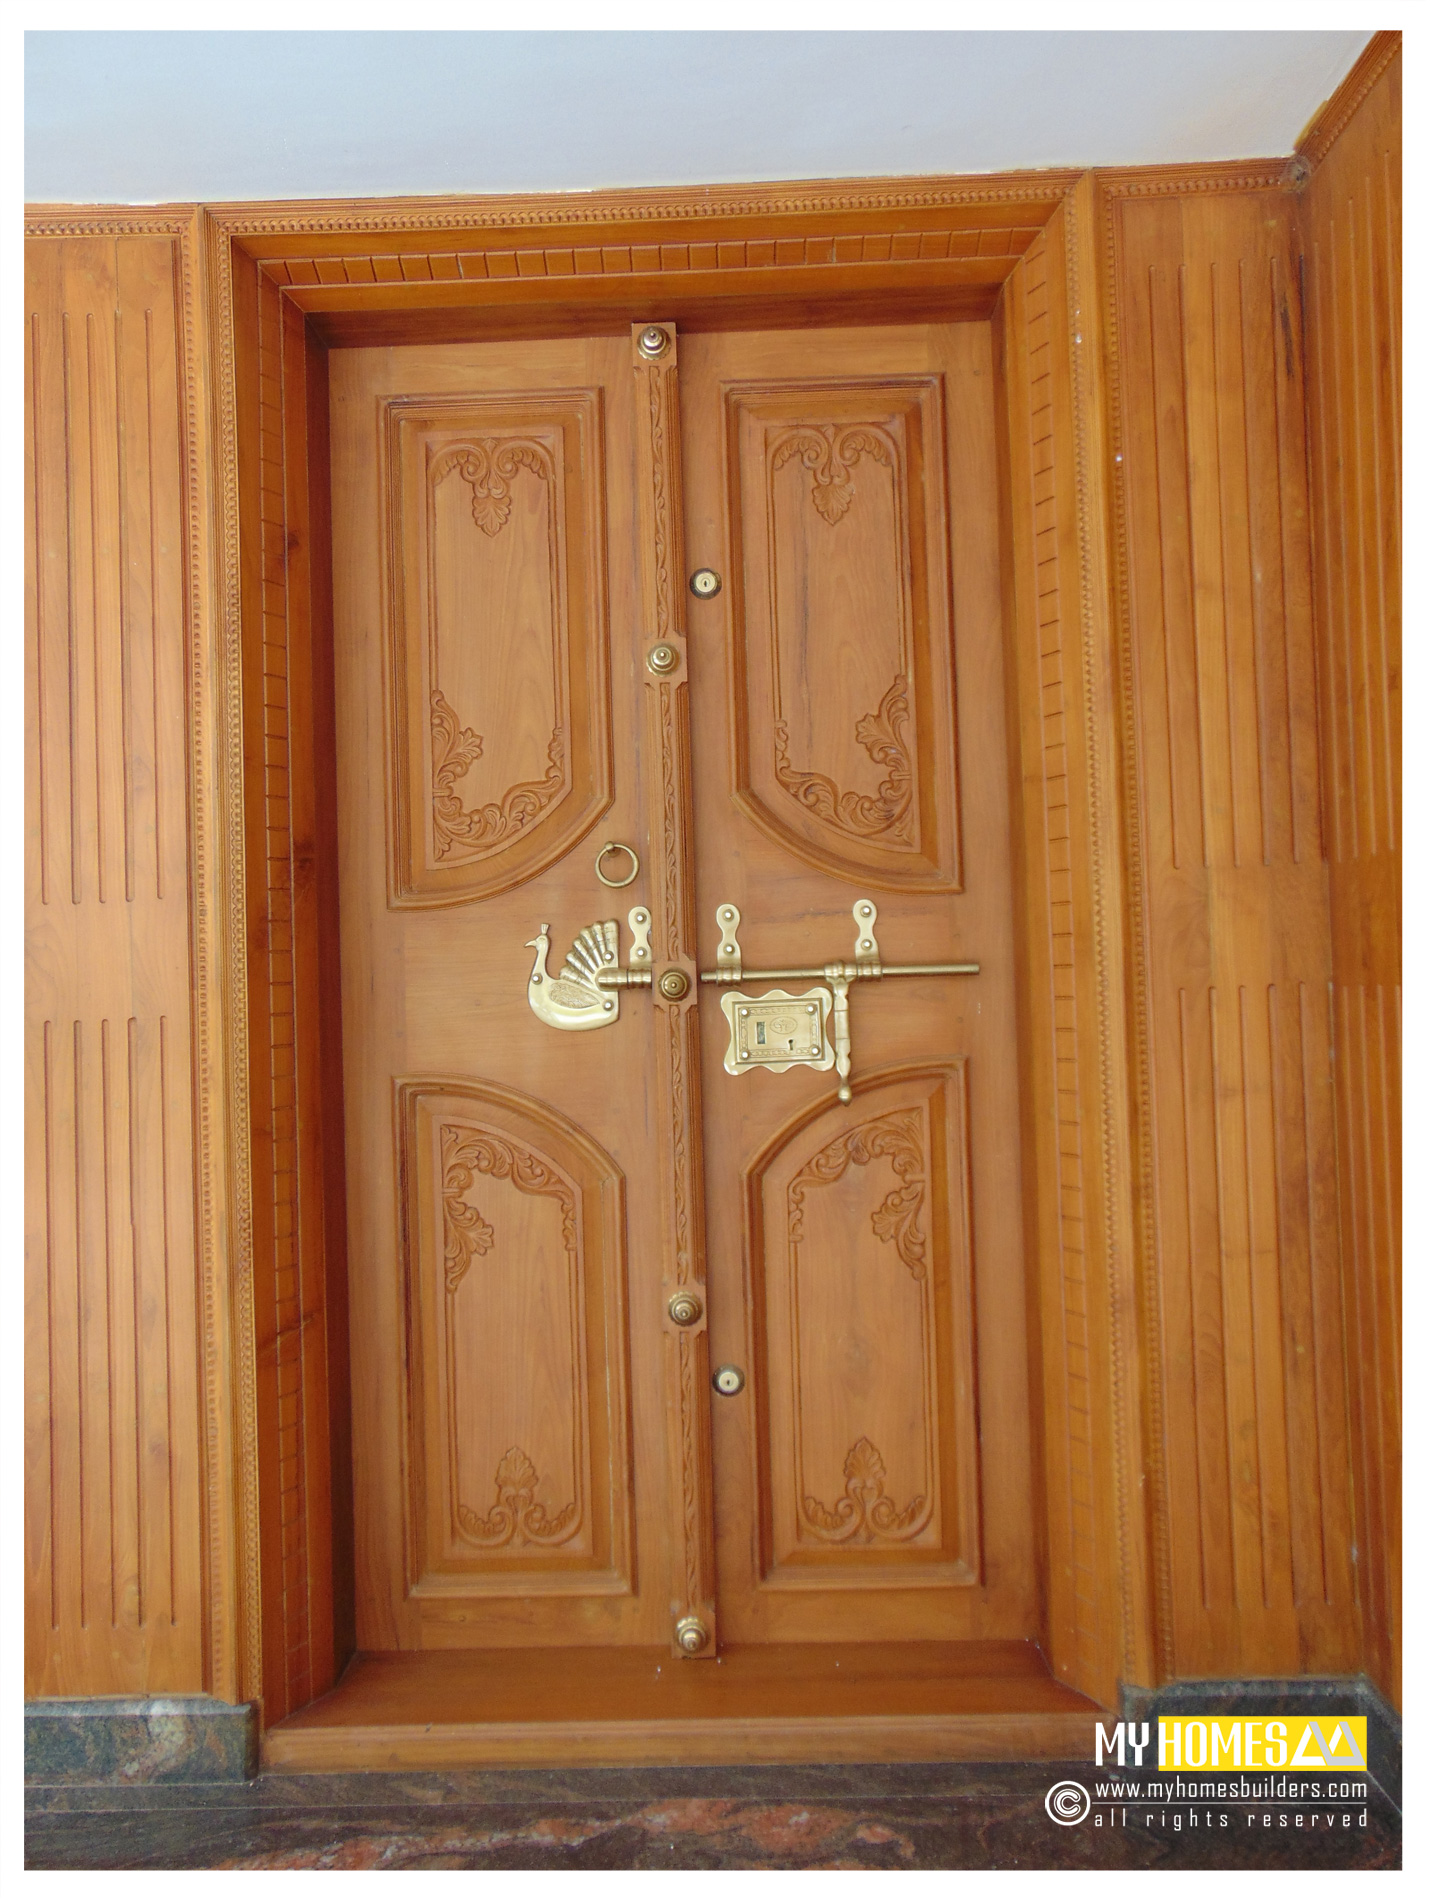 New idea for homes main door designs in kerala india Wooden main door designs in india